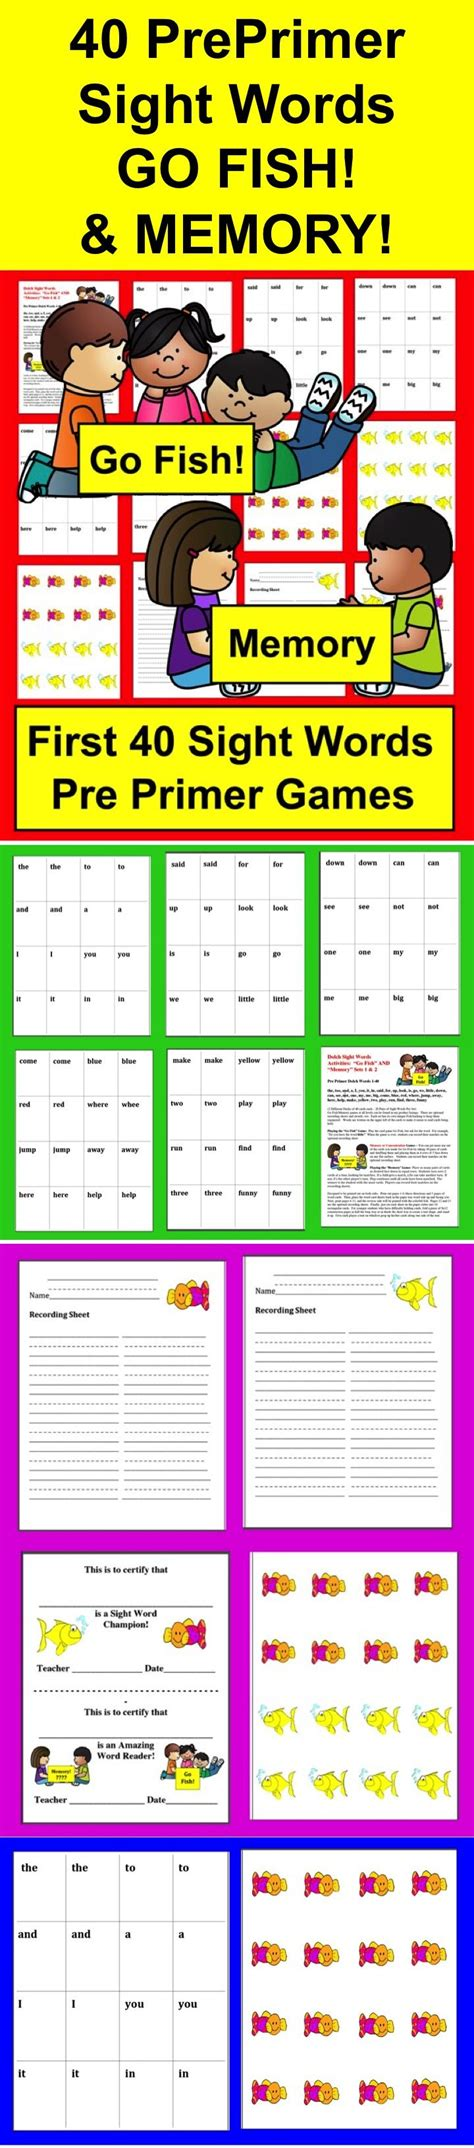 dolch sight word printable memory games sight word games go fish and memory sets 1 2